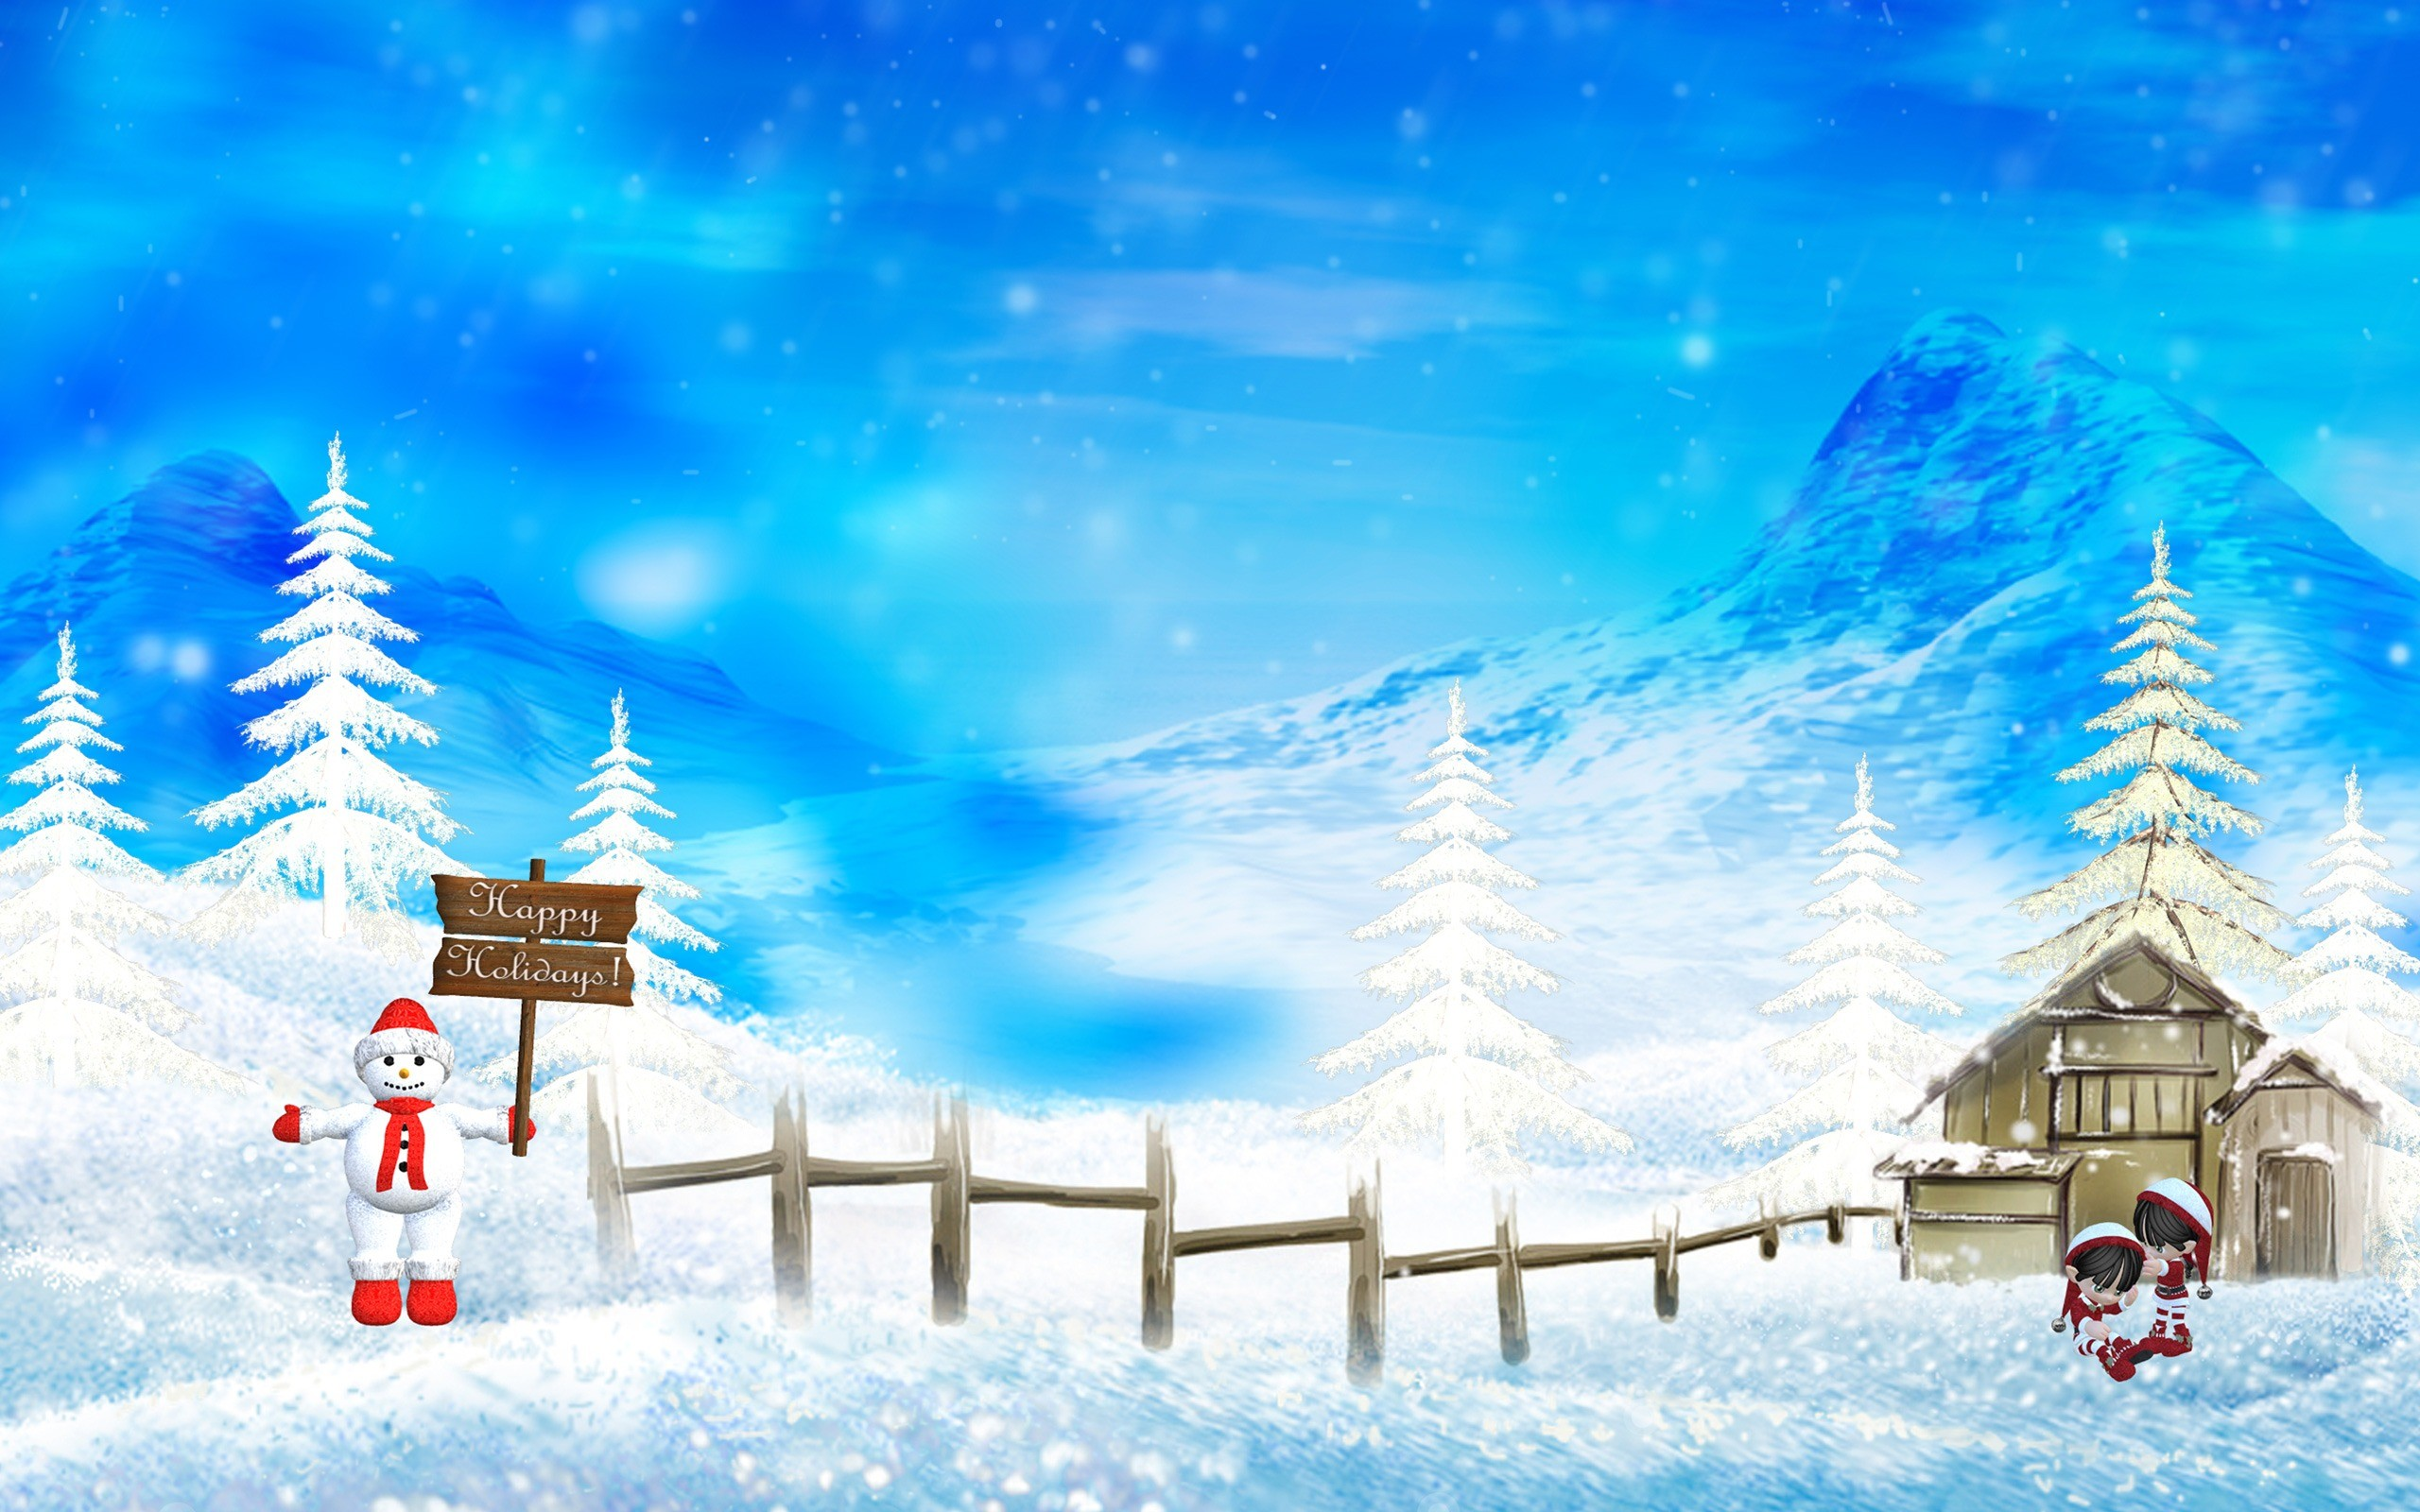 Res: 2560x1600, Happy Hollidays Wallpaper Christmas Holidays Wallpapers